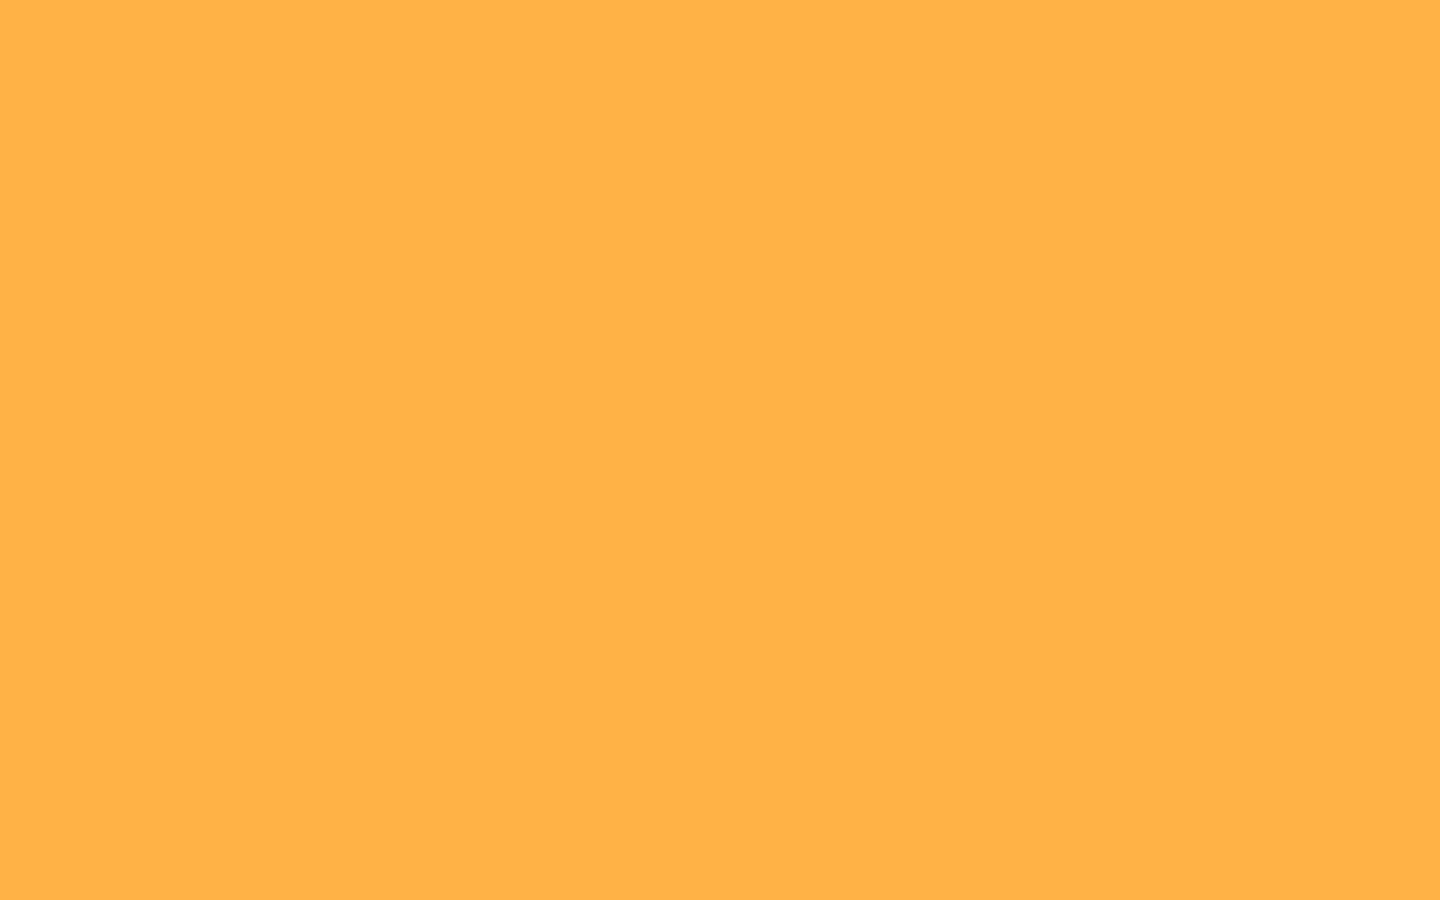 1440x900 Pastel Orange Solid Color Background